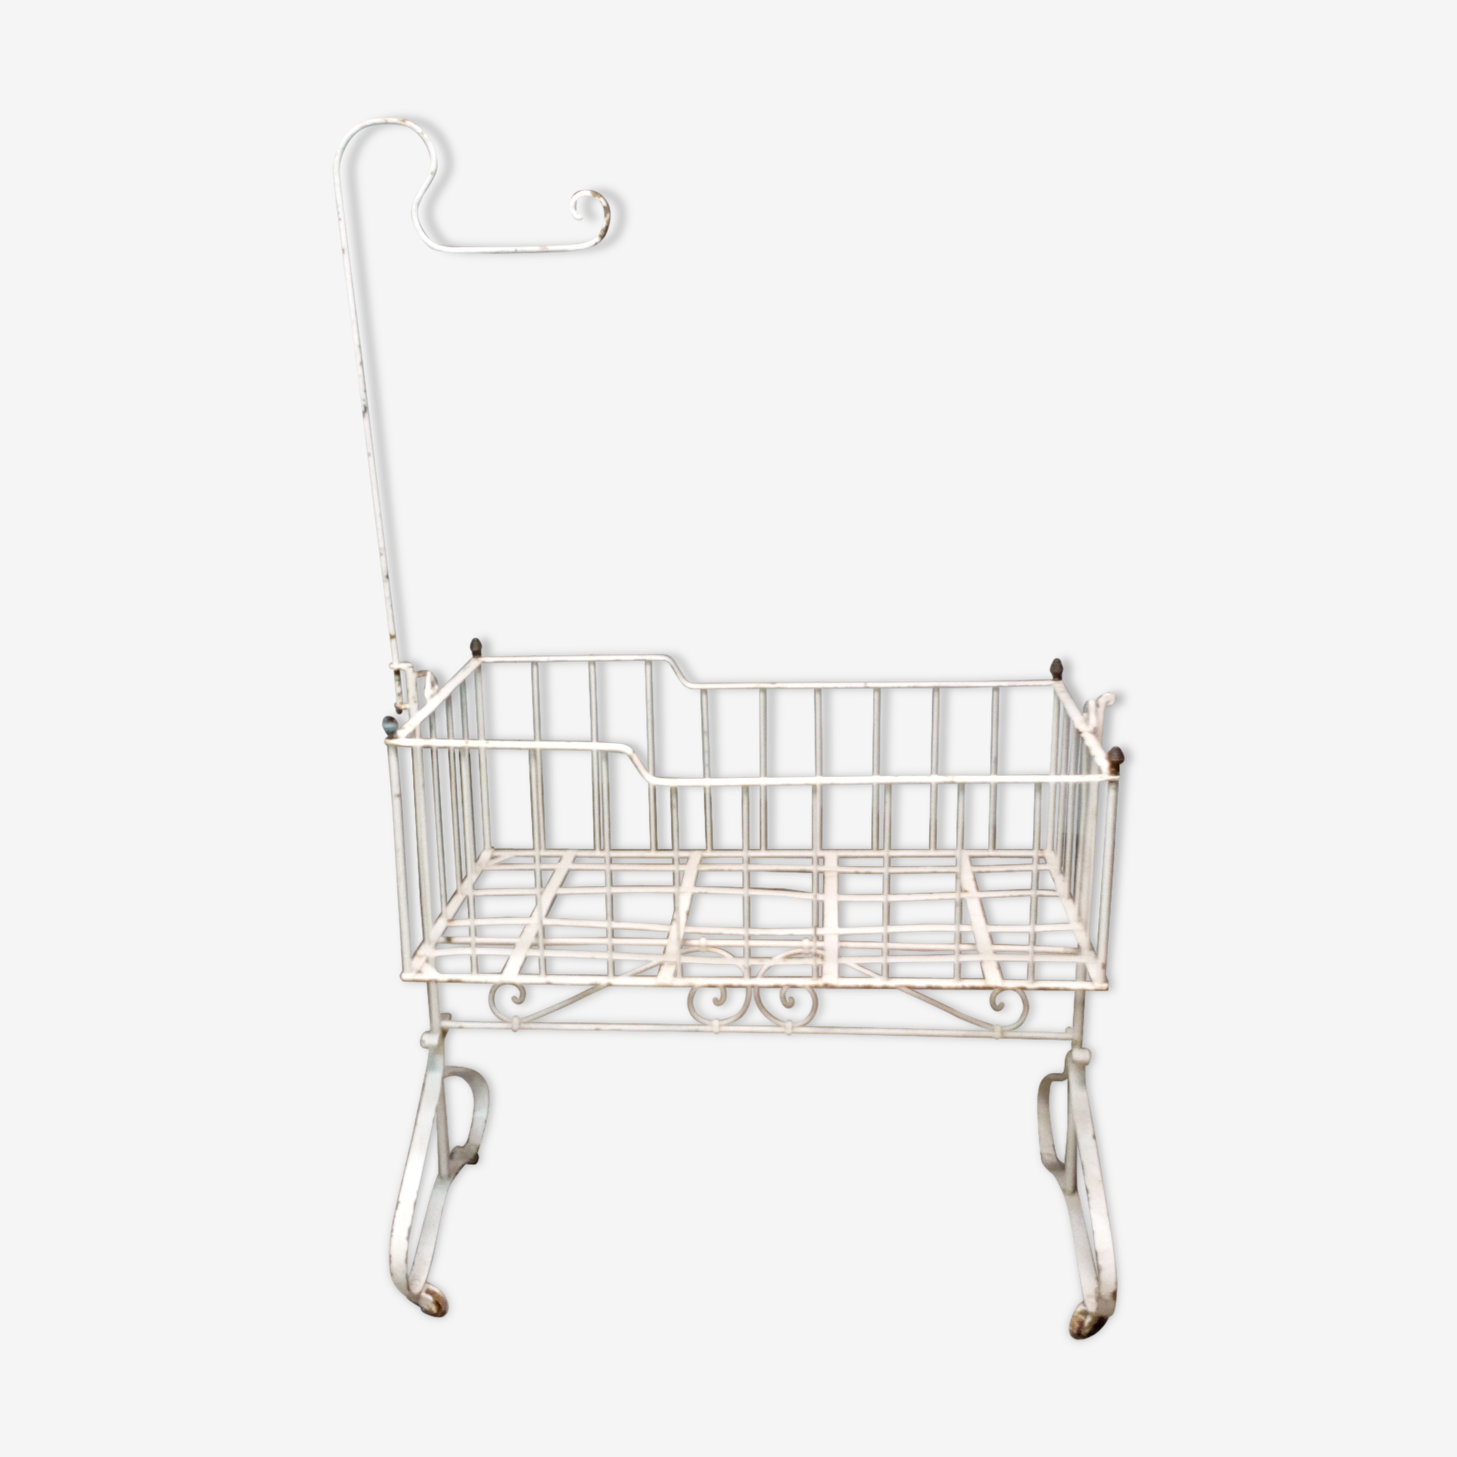 Cradle in wrought iron